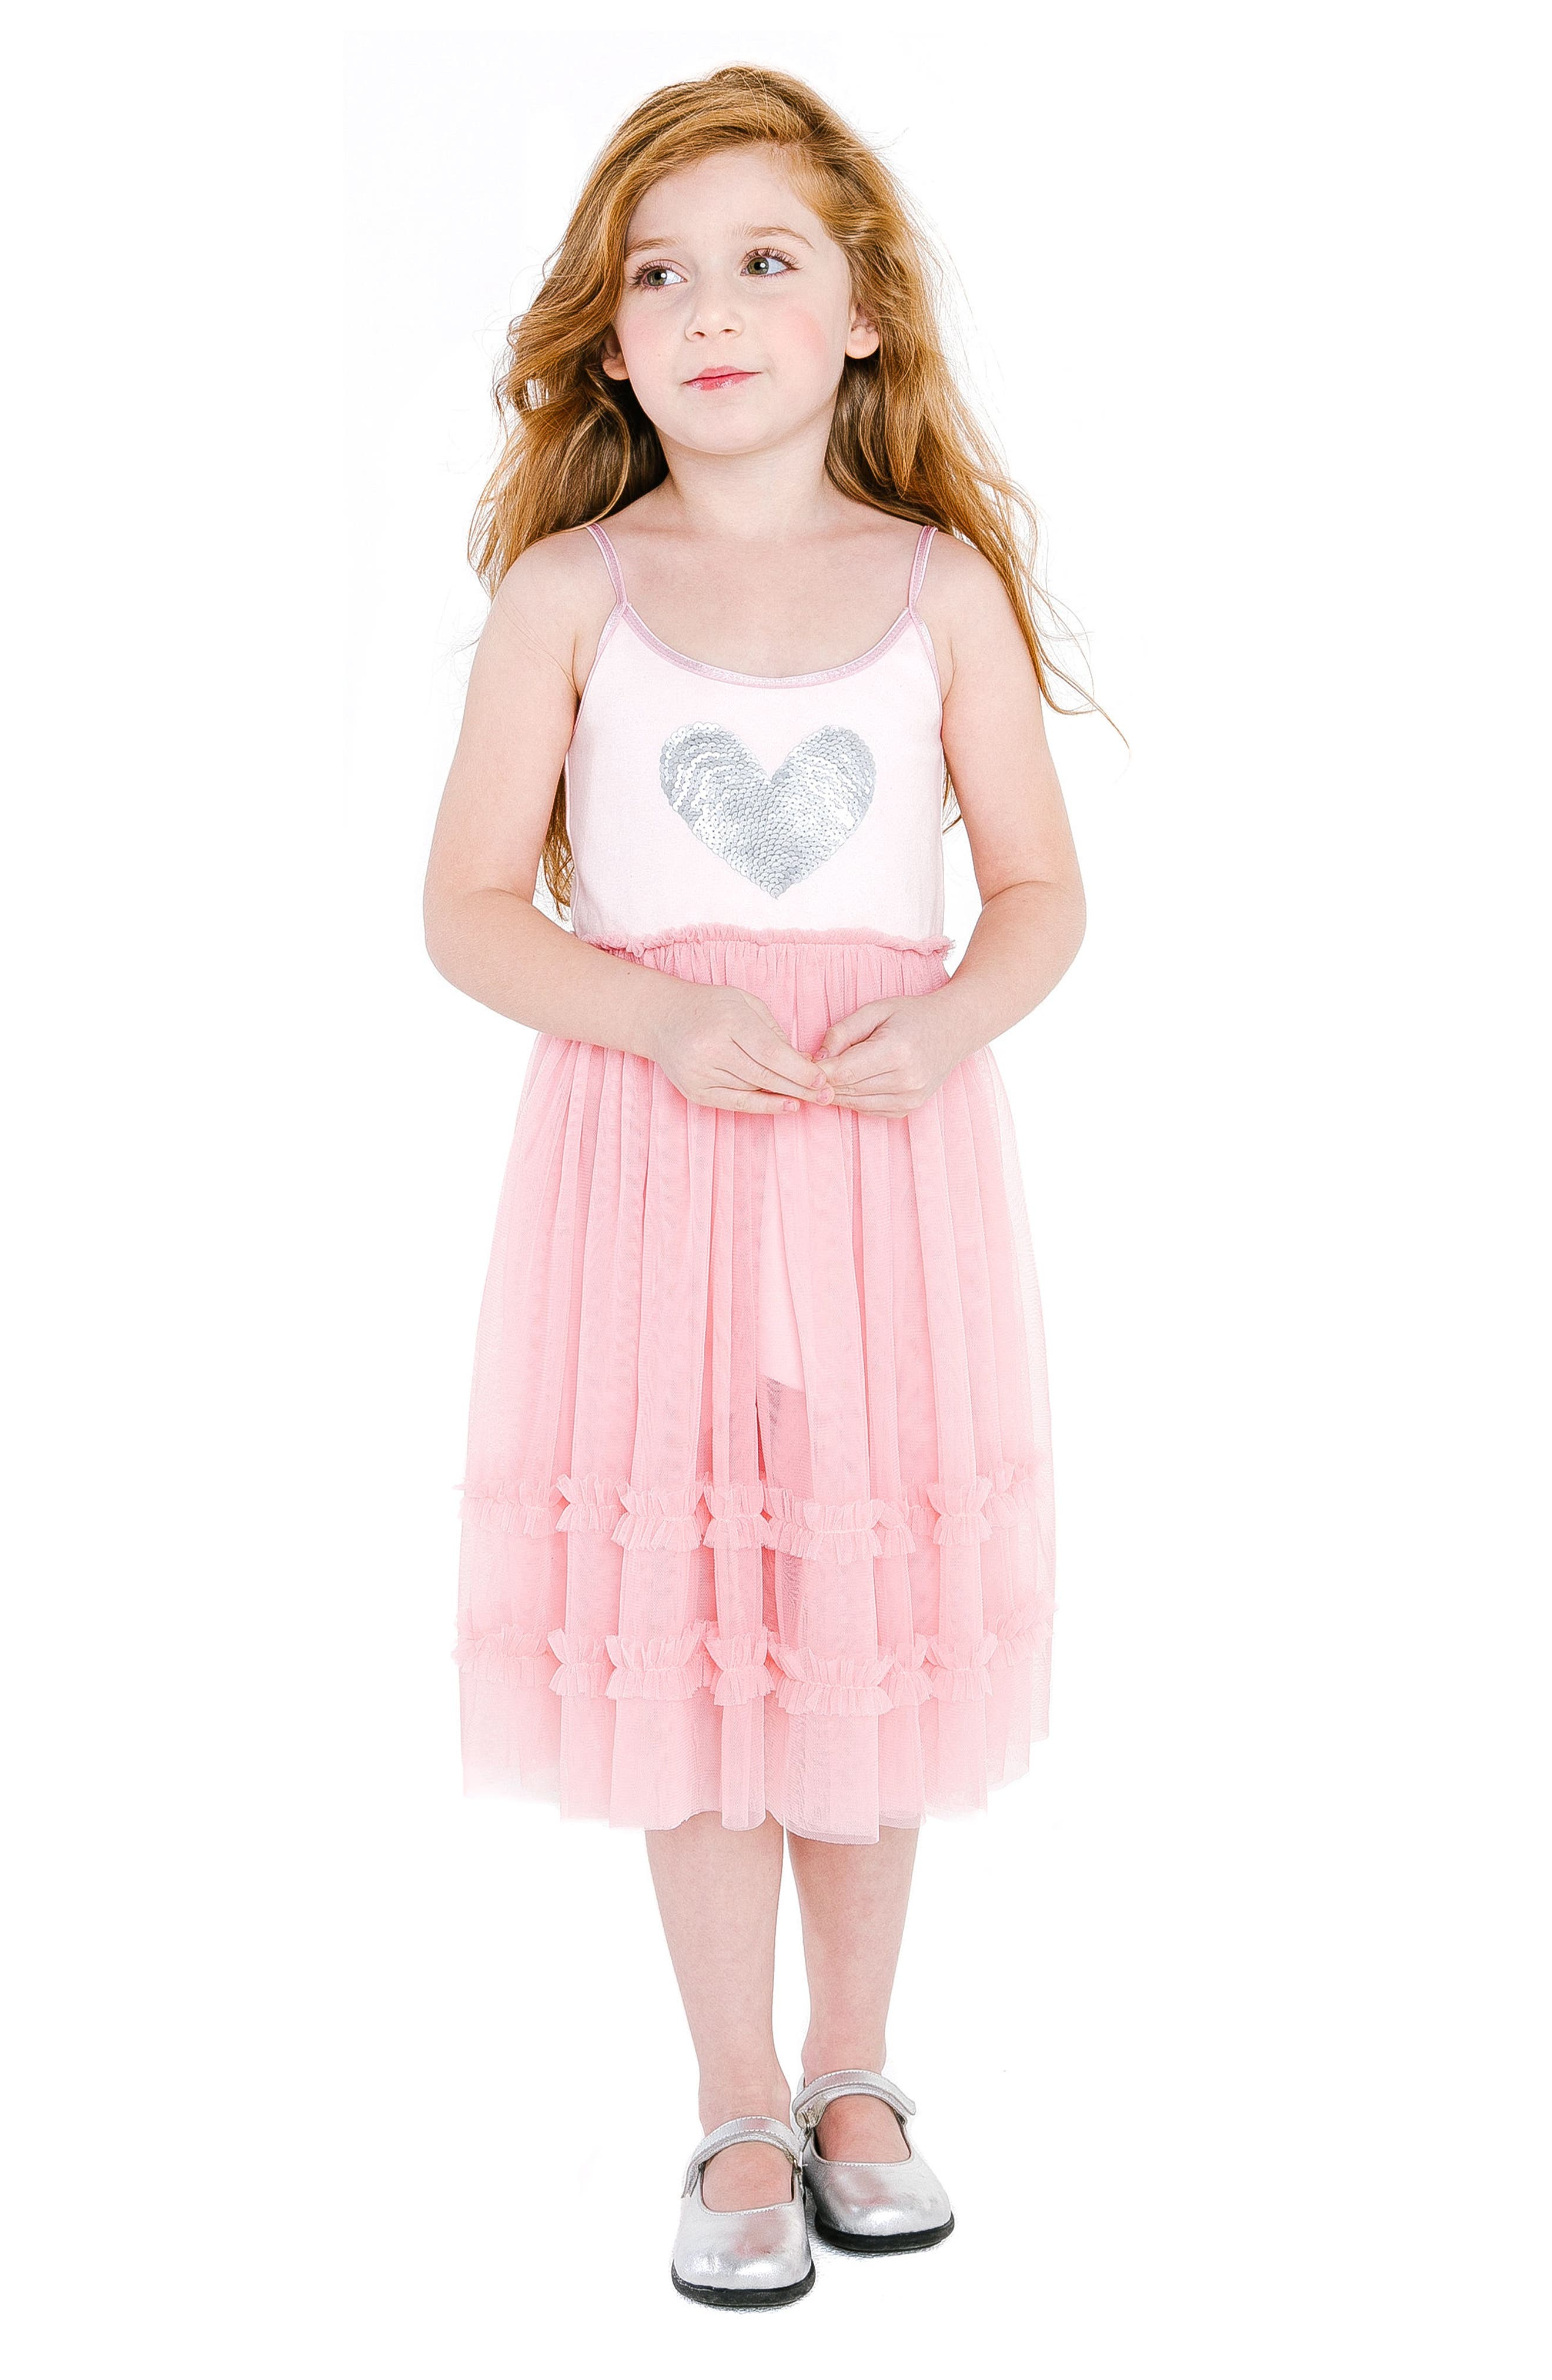 Sequin Heart Dress with Tulle Skirt,                             Alternate thumbnail 4, color,                             650